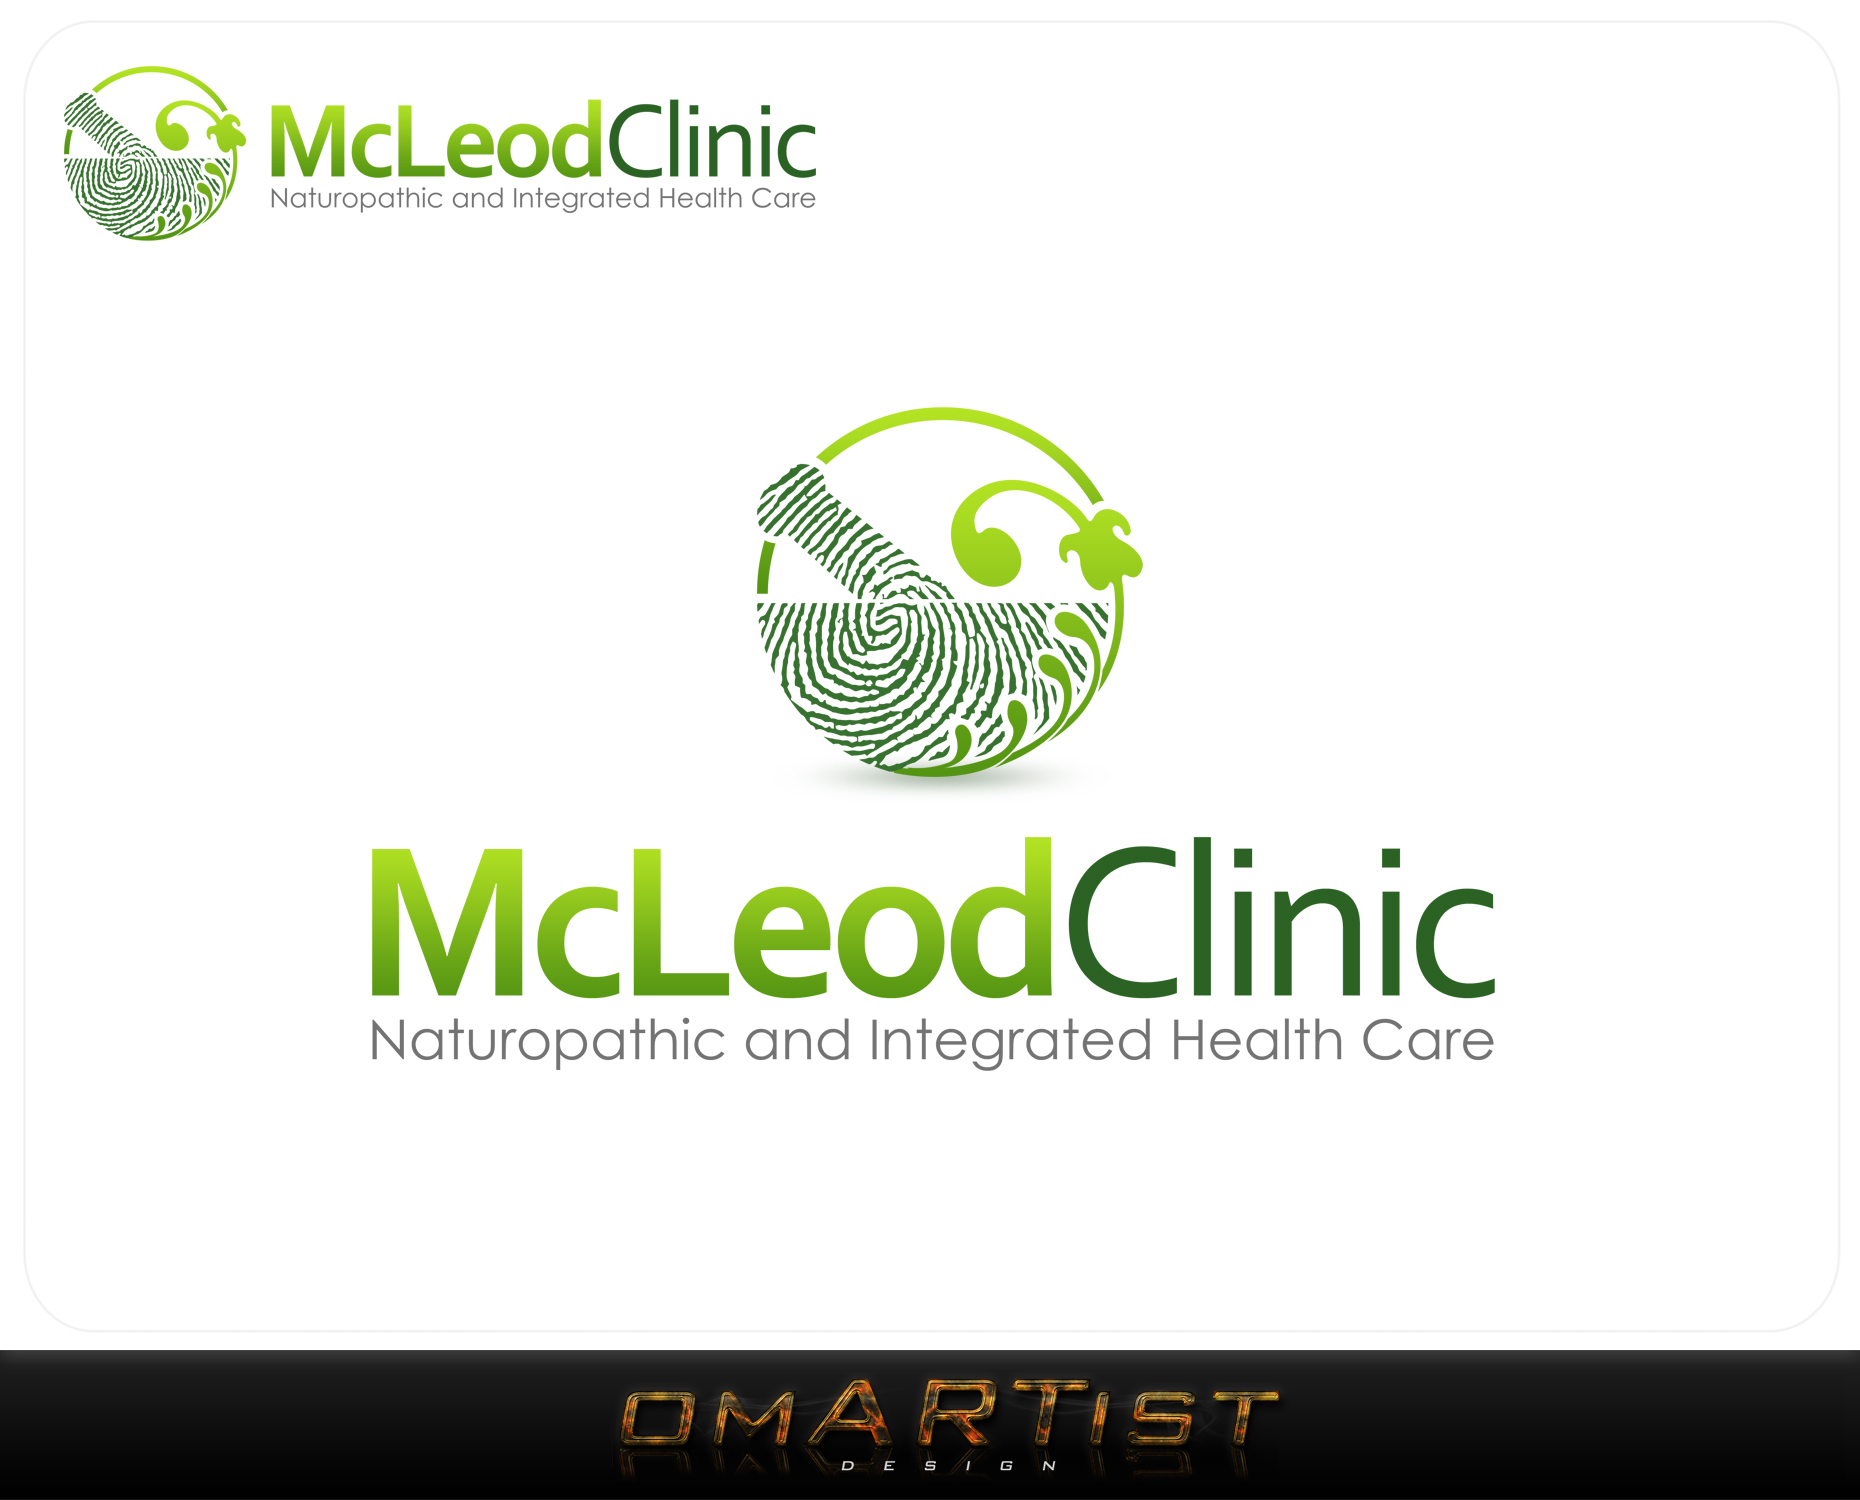 Logo Design by omARTist - Entry No. 101 in the Logo Design Contest Creative Logo Design for McLeod Clinic.